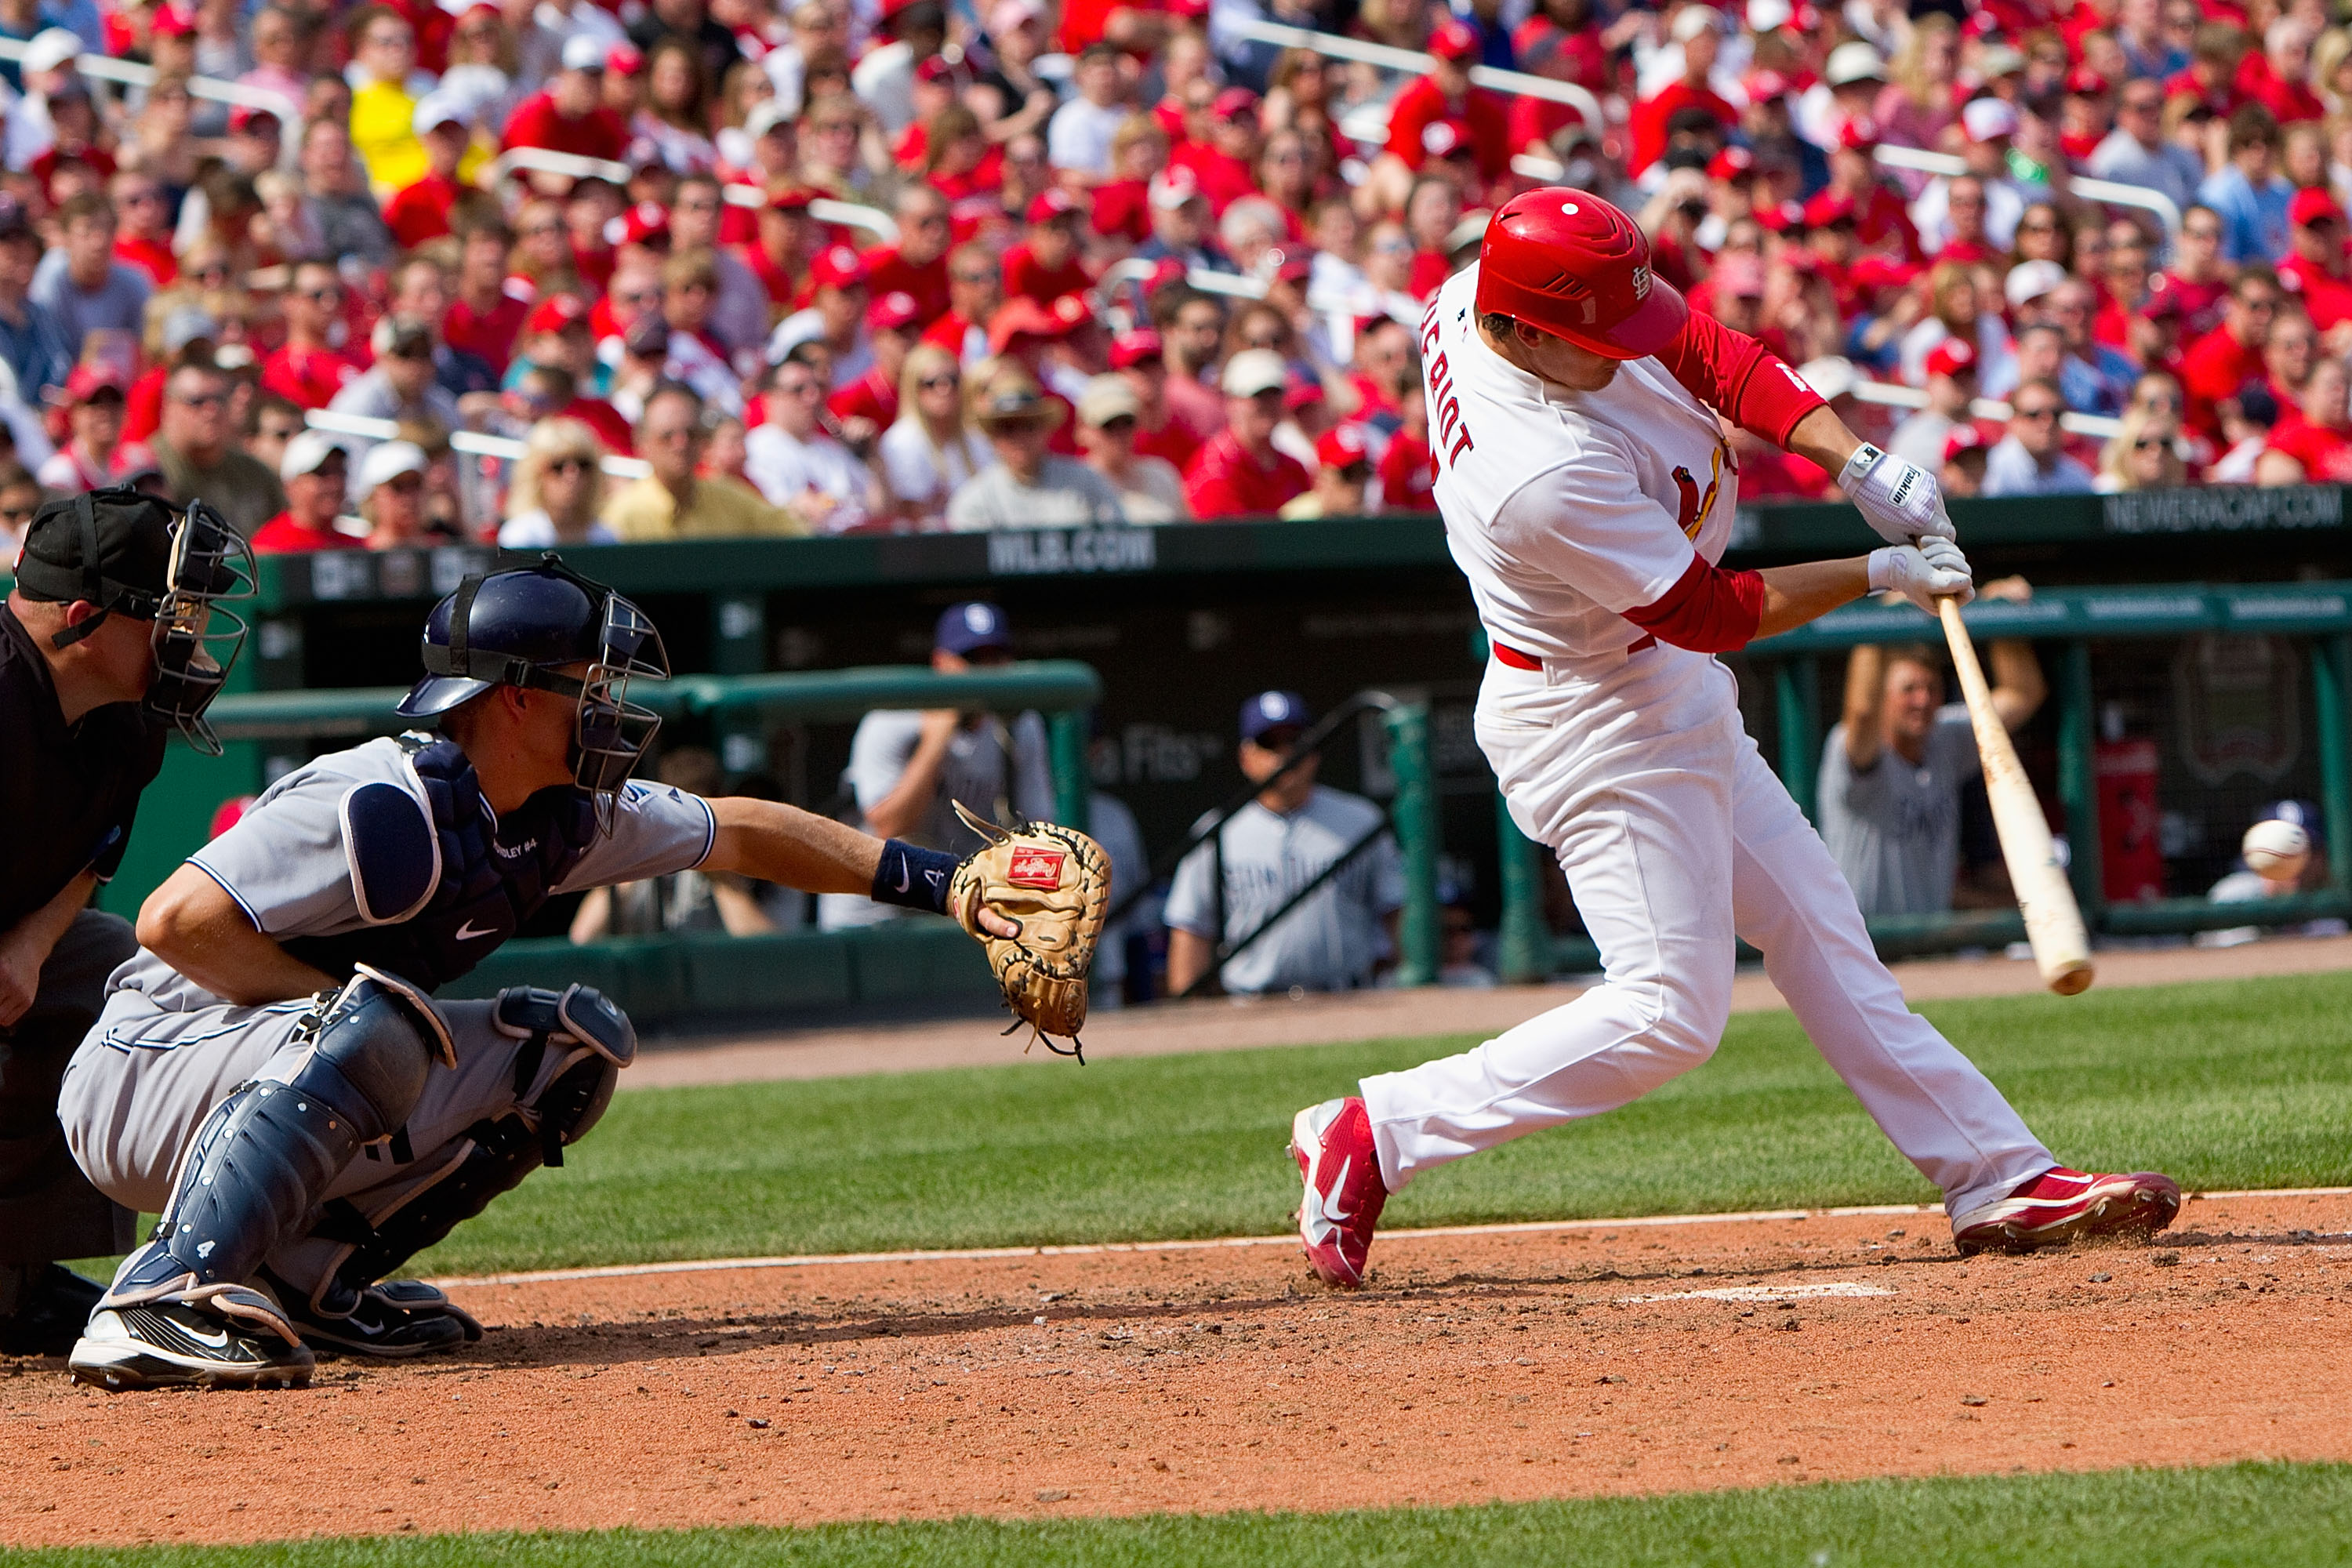 ST. LOUIS, MO - APRIL 3: Ryan Theriot #3 of the St. Louis Cardinals hits an RBI single against the San Diego Padre at Busch Stadium on April 3, 2011 in St. Louis, Missouri.  (Photo by Dilip Vishwanat/Getty Images)